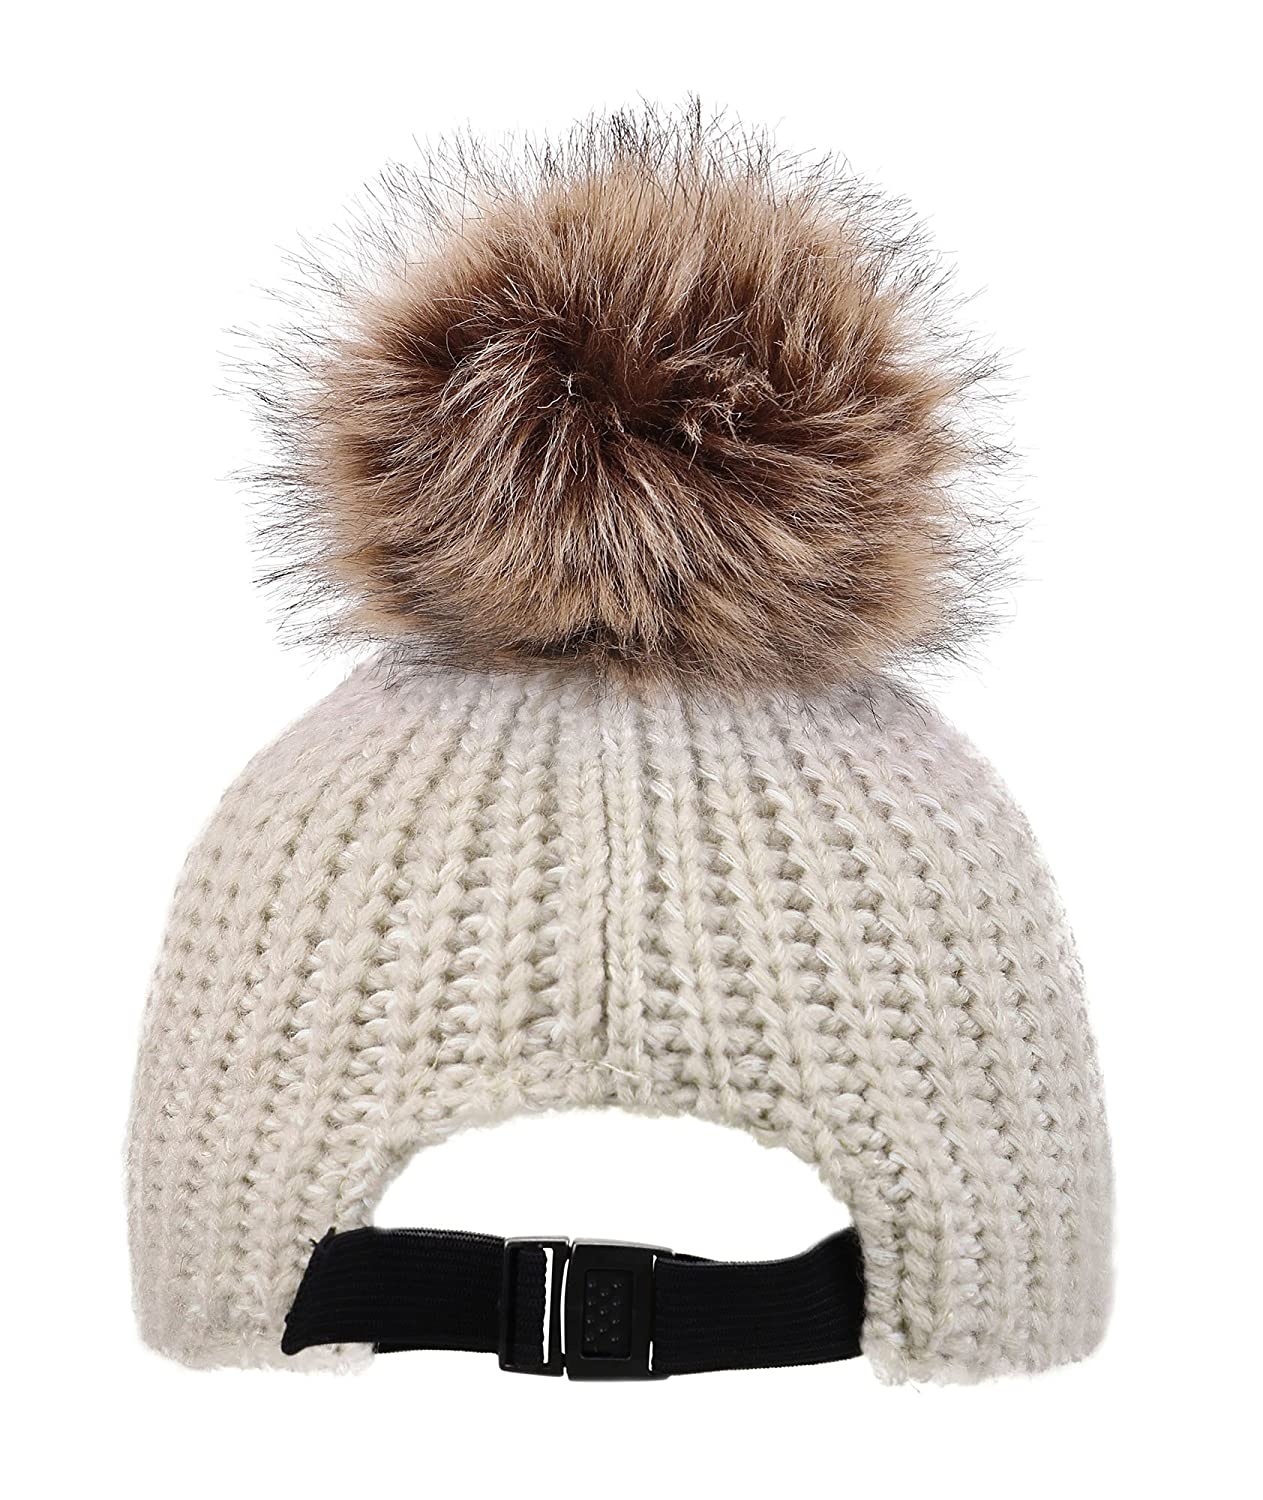 93b5612e3a7 Amazon.com  Kids Girls Winter Warm Thick Knitted Ski Pompom Beanie Hat  Beige  Clothing